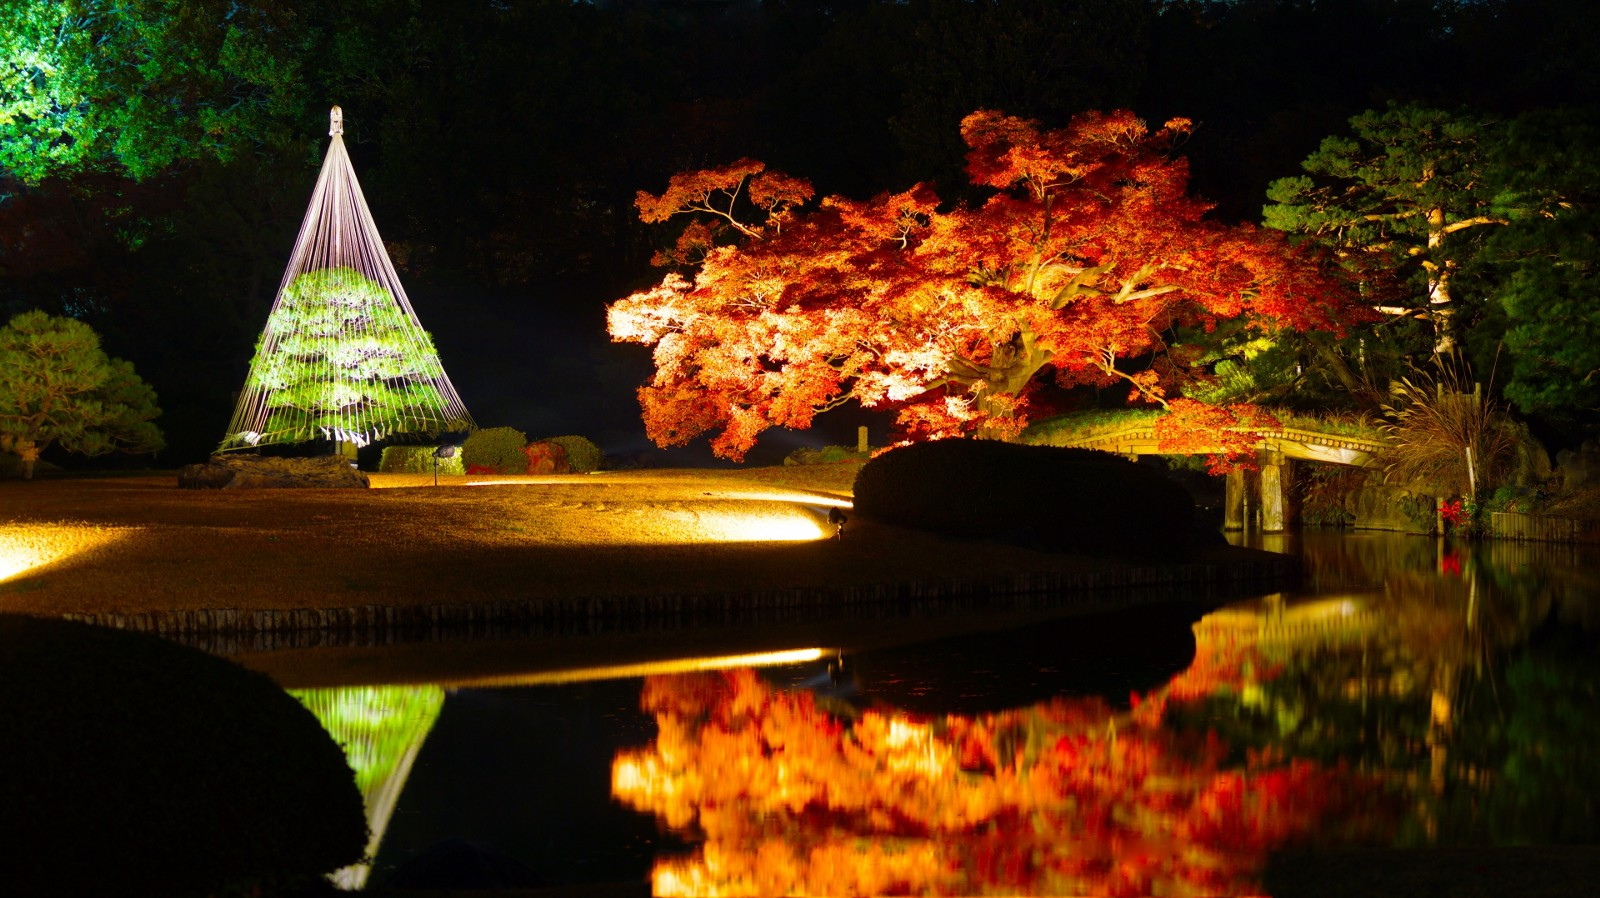 Illuminated Rikugien with autumn leaves